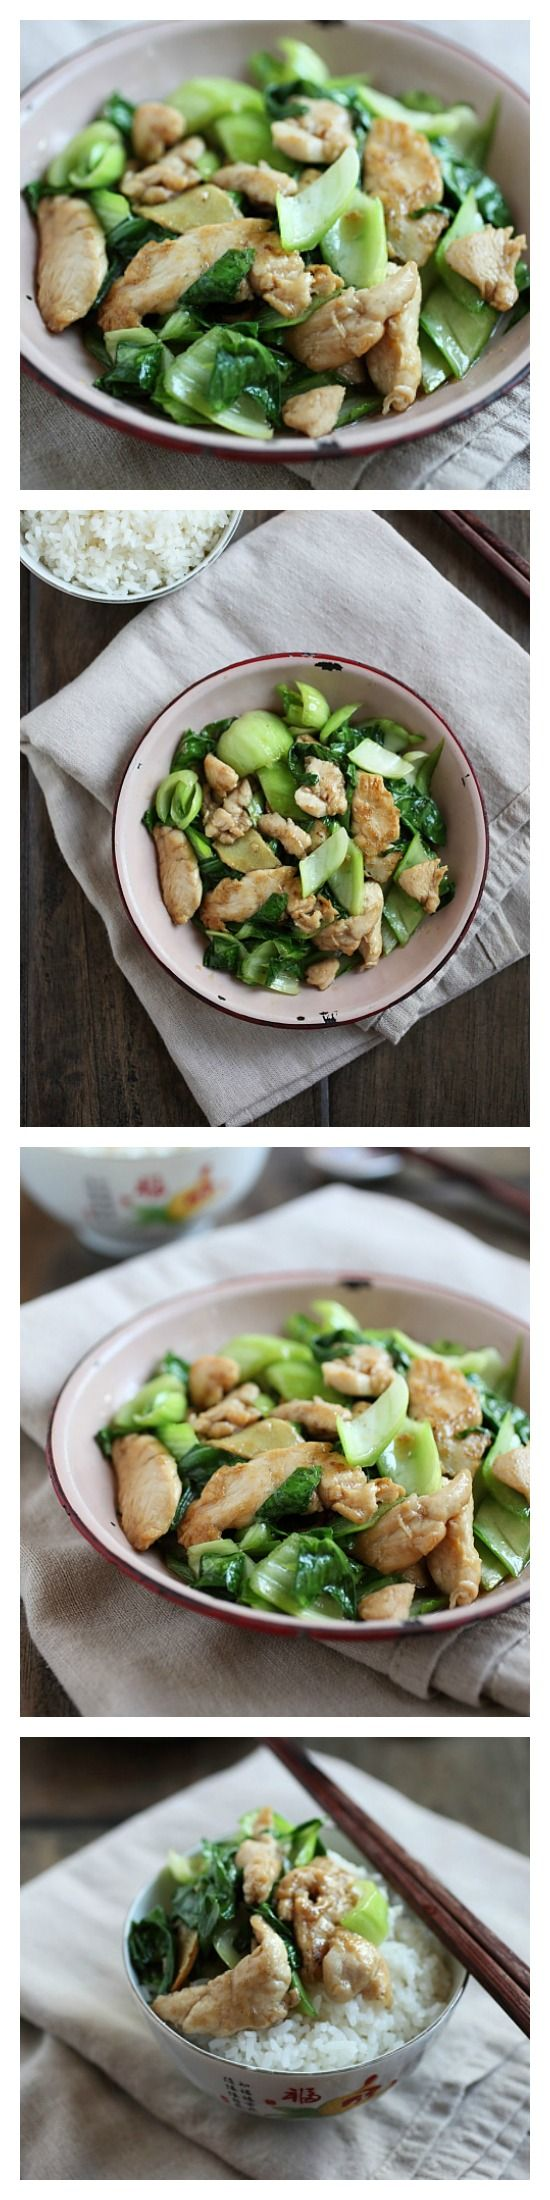 {China} Bok Choy Chicken Recipe - easy and healthy stir-fry with 3 basic ingredients only. So YUMMY and takes only 15 mins to make | http://rasamalaysia.com